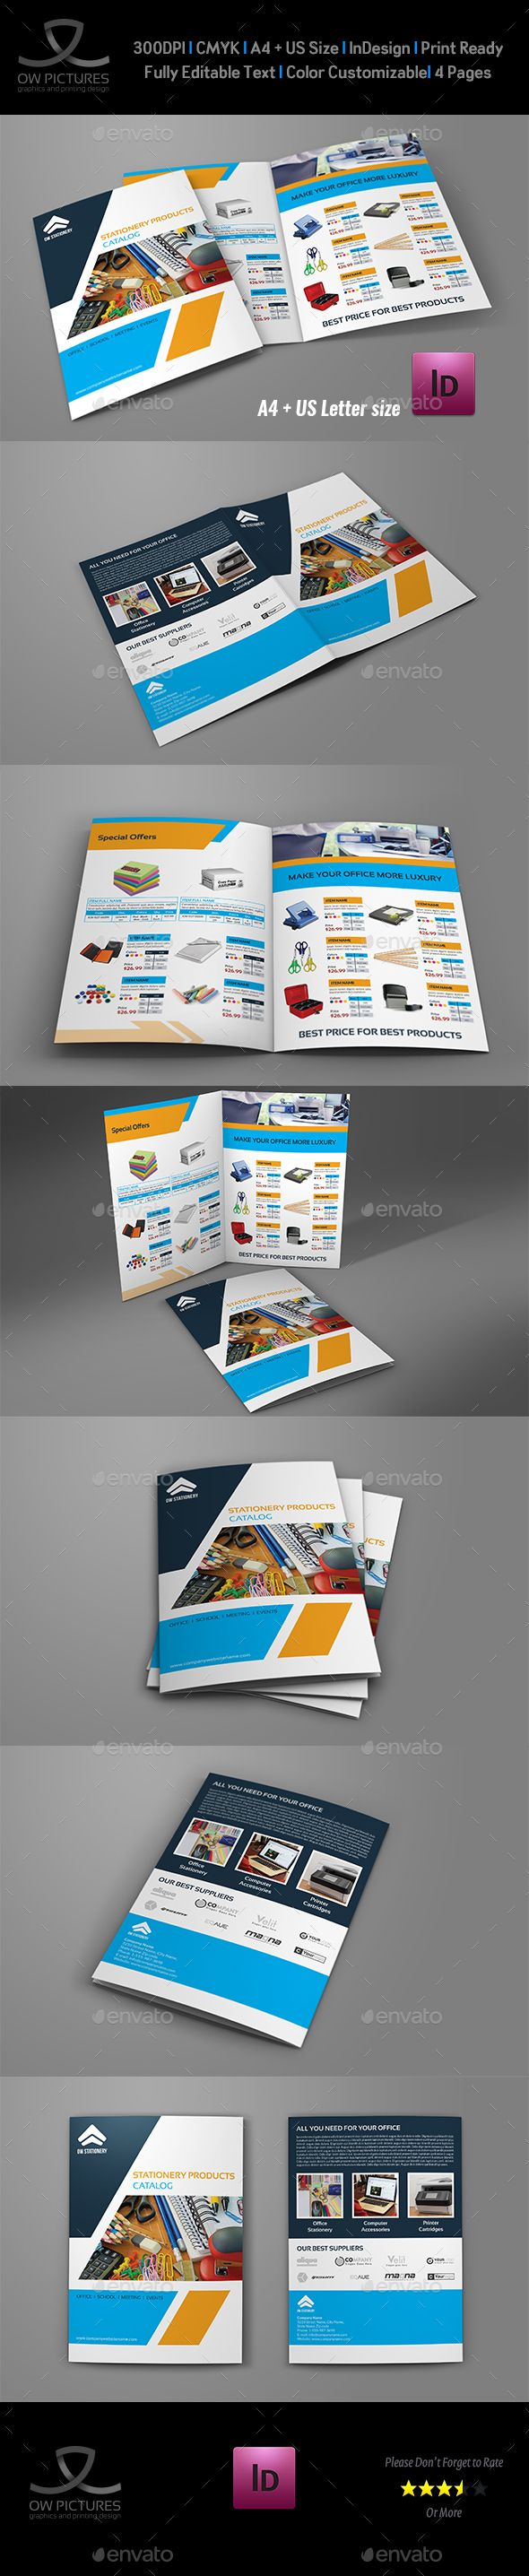 Stationery Products Catalog Bi Fold Brochure Template Brochure - Bi fold brochure template indesign